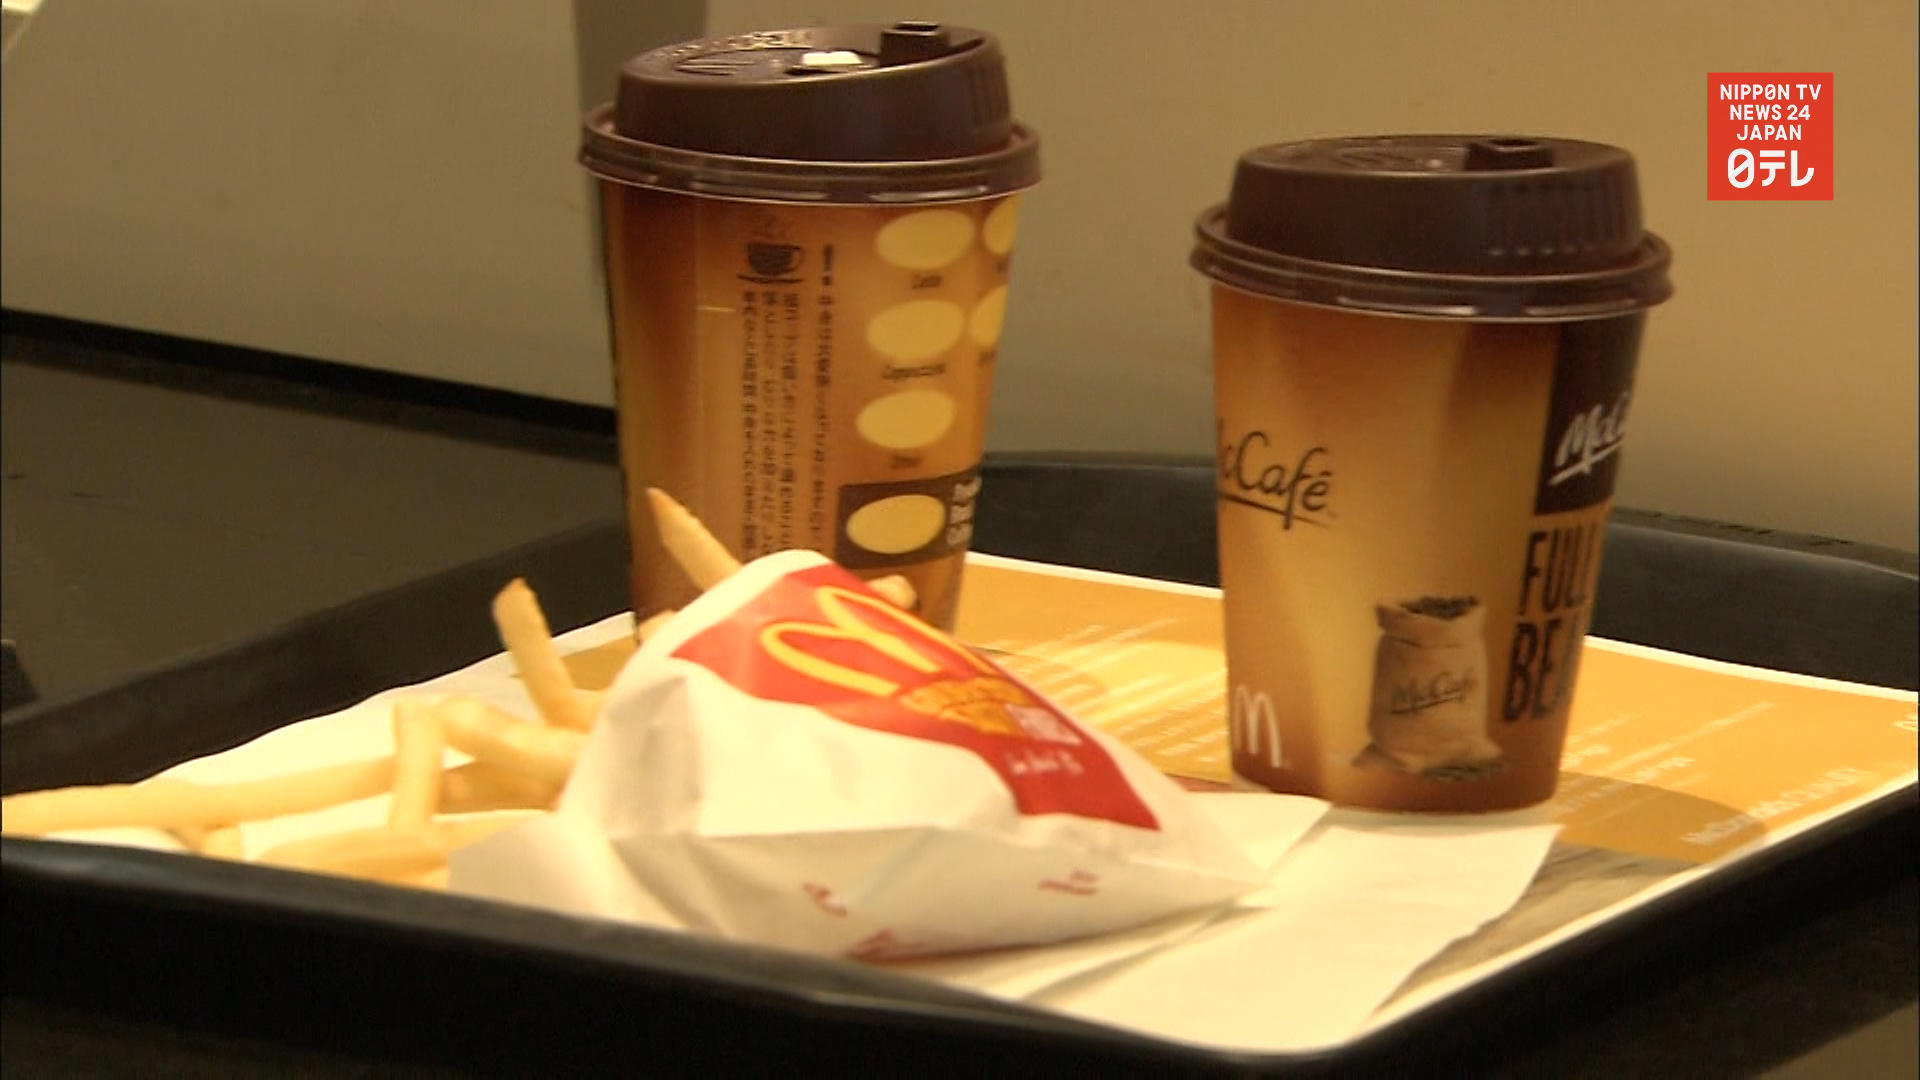 McDonald's, Starbucks cut back on store operations in Japan